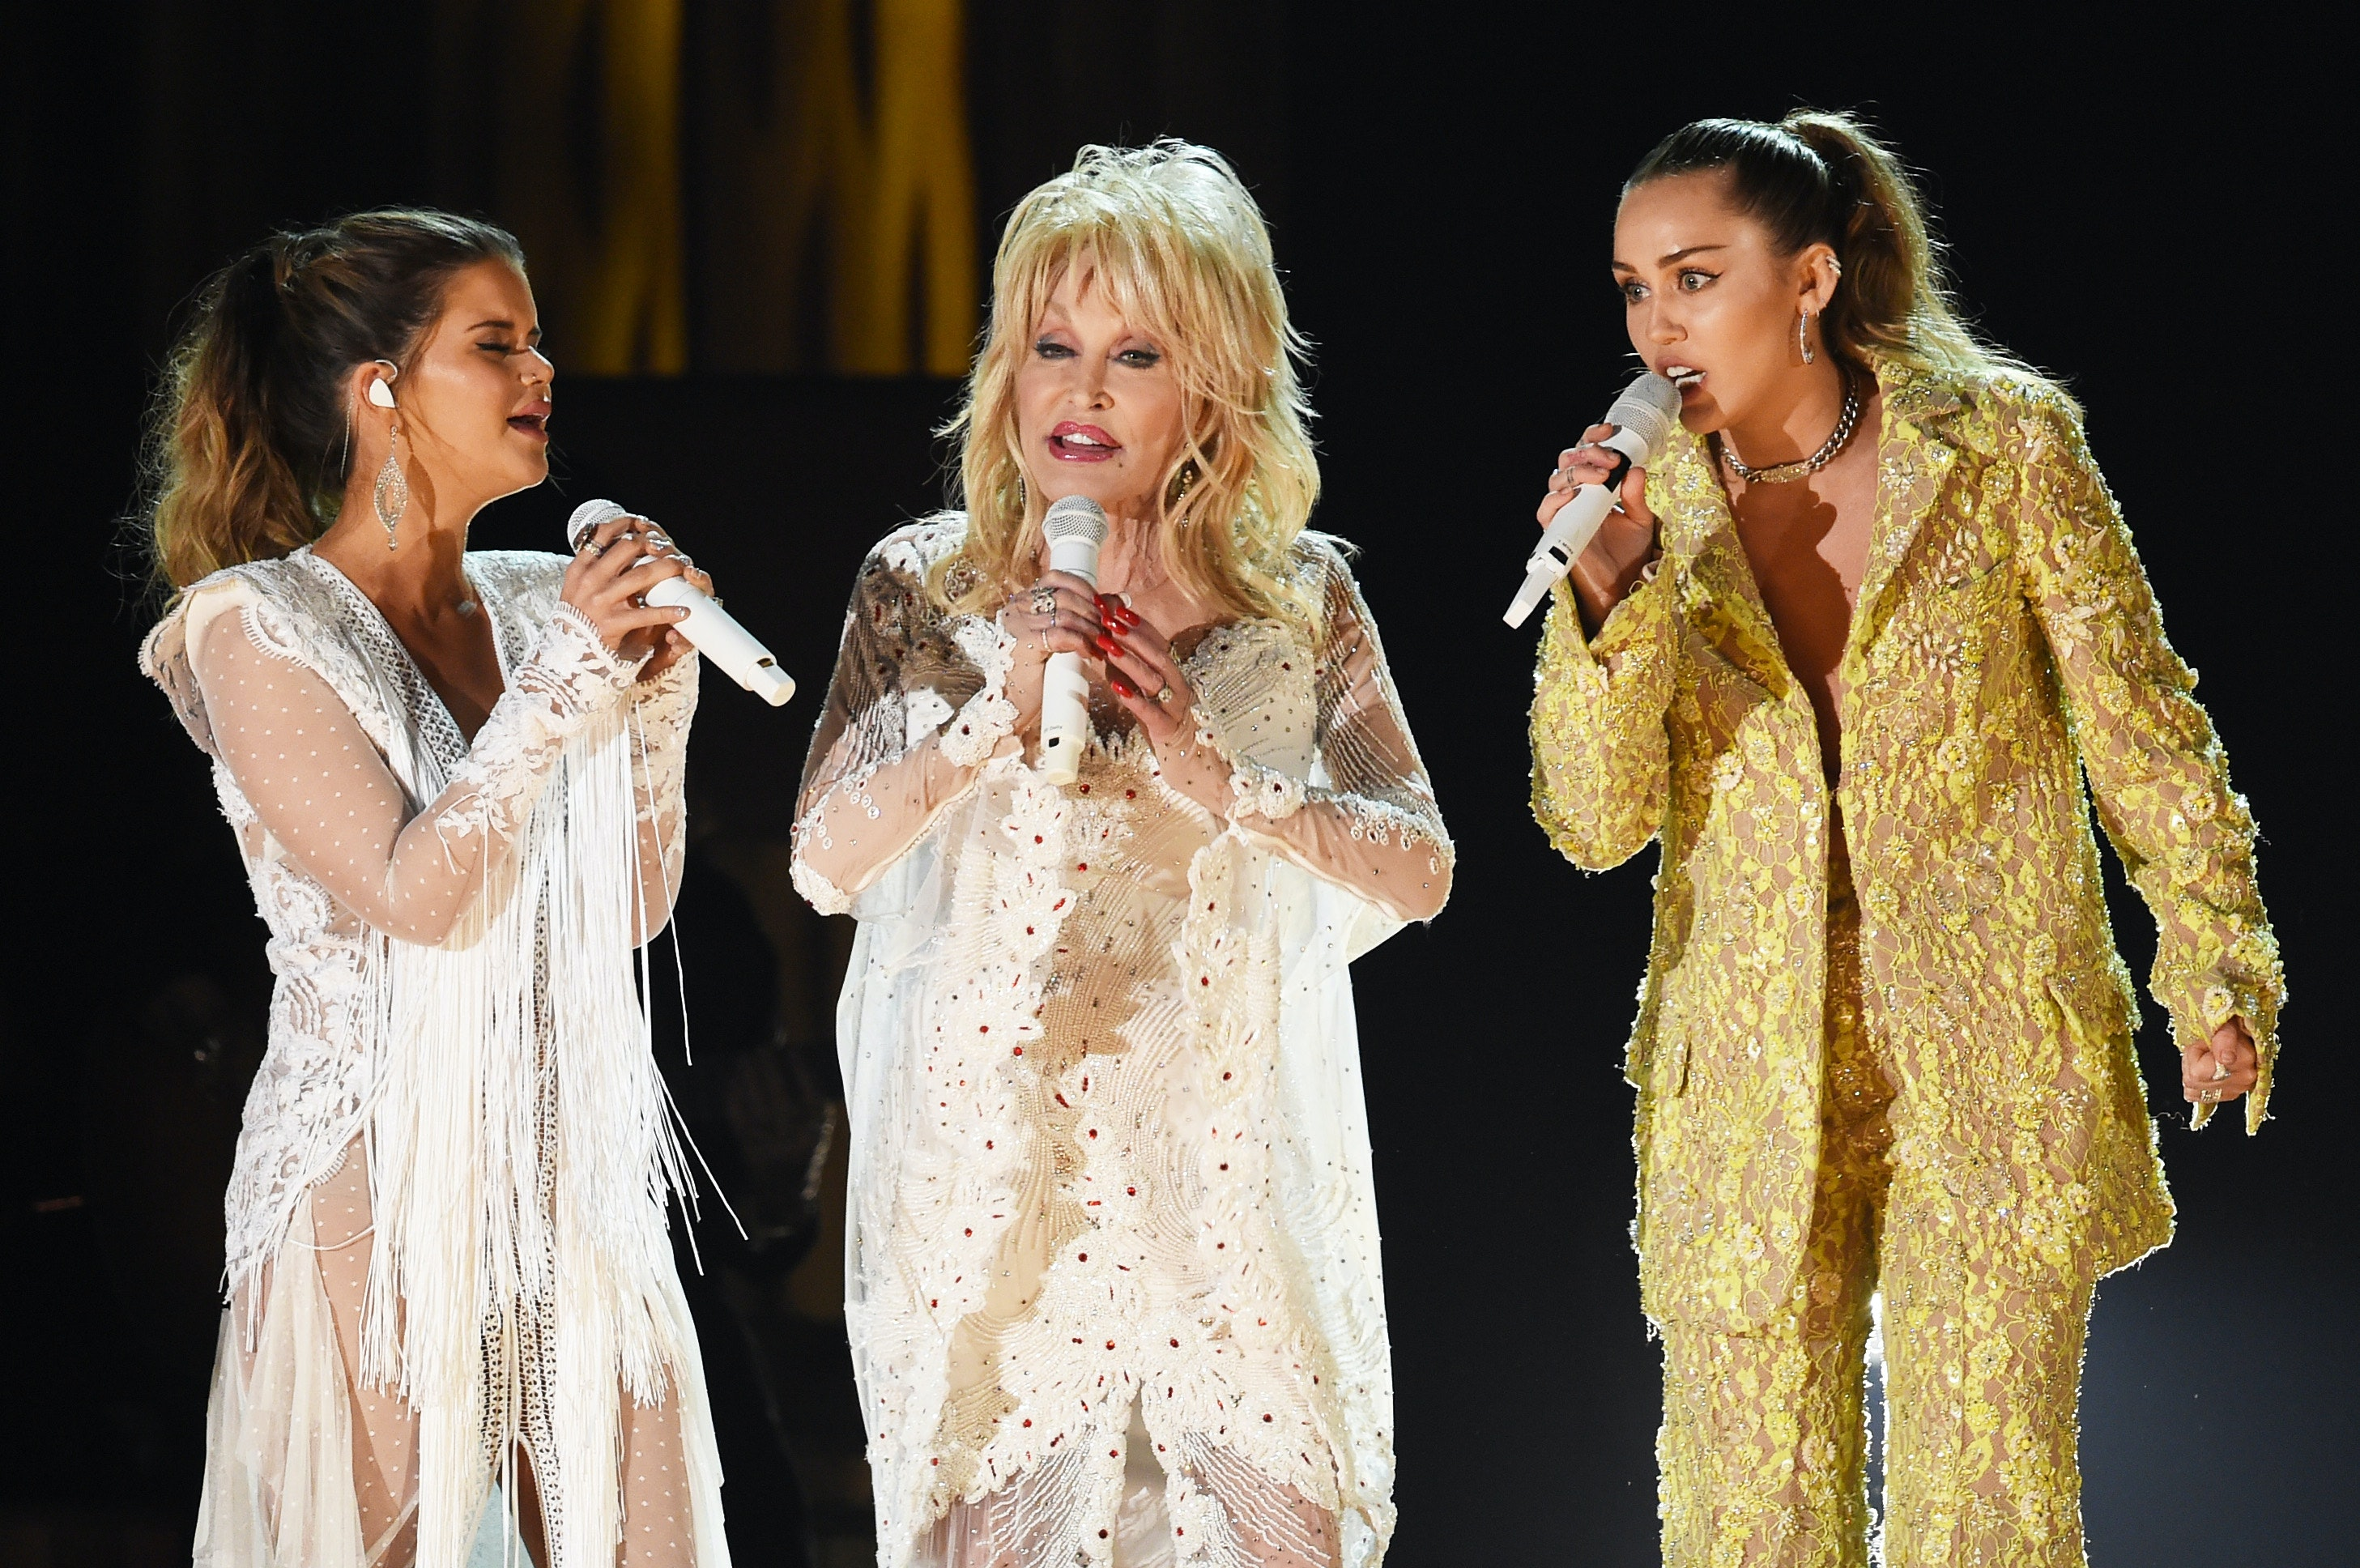 Dolly Parton S Grammys Performance With Miley Cyrus Katy Perry More Had Twitter In Absolute Awe